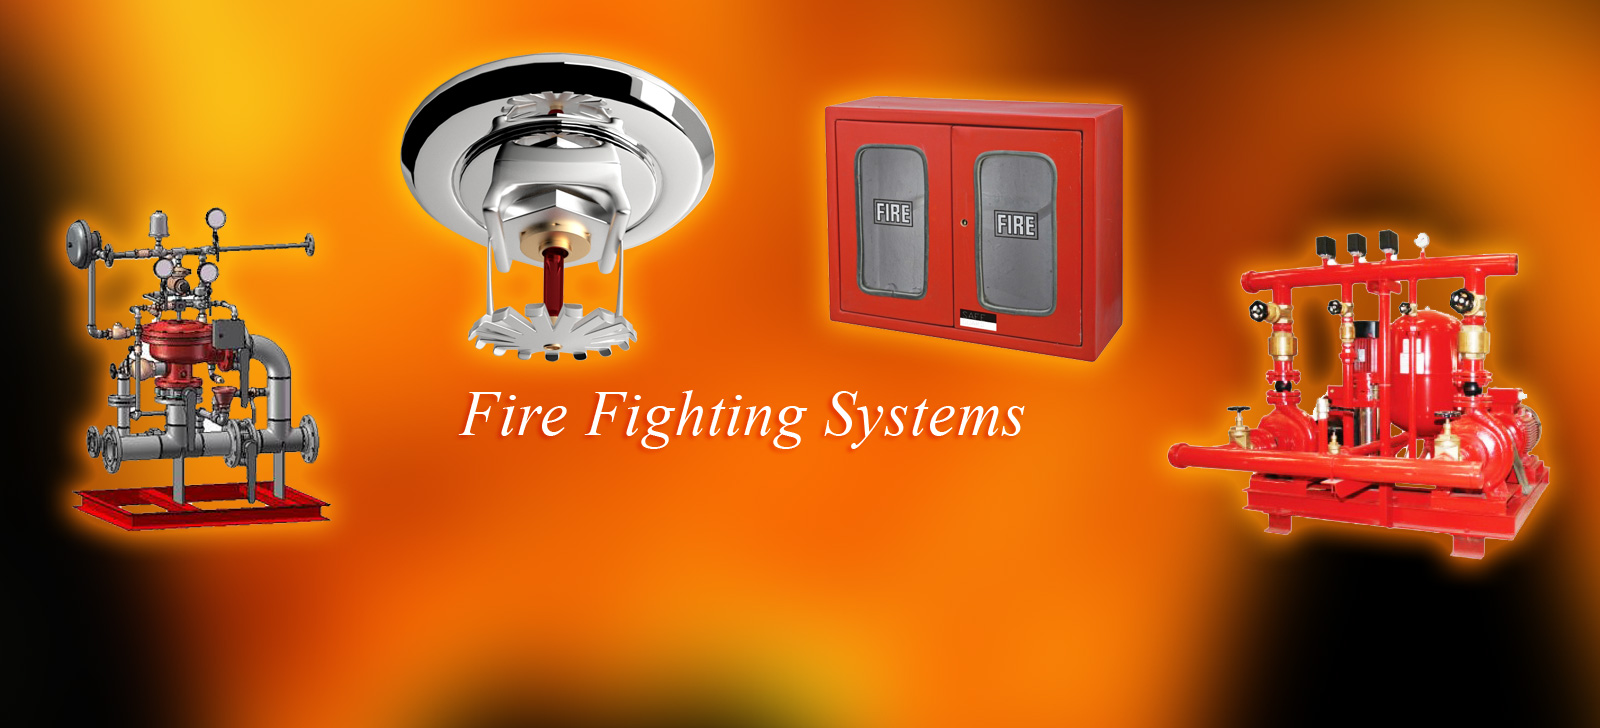 Fire Alarm Systems Kottayam Home Security Systems Kerala